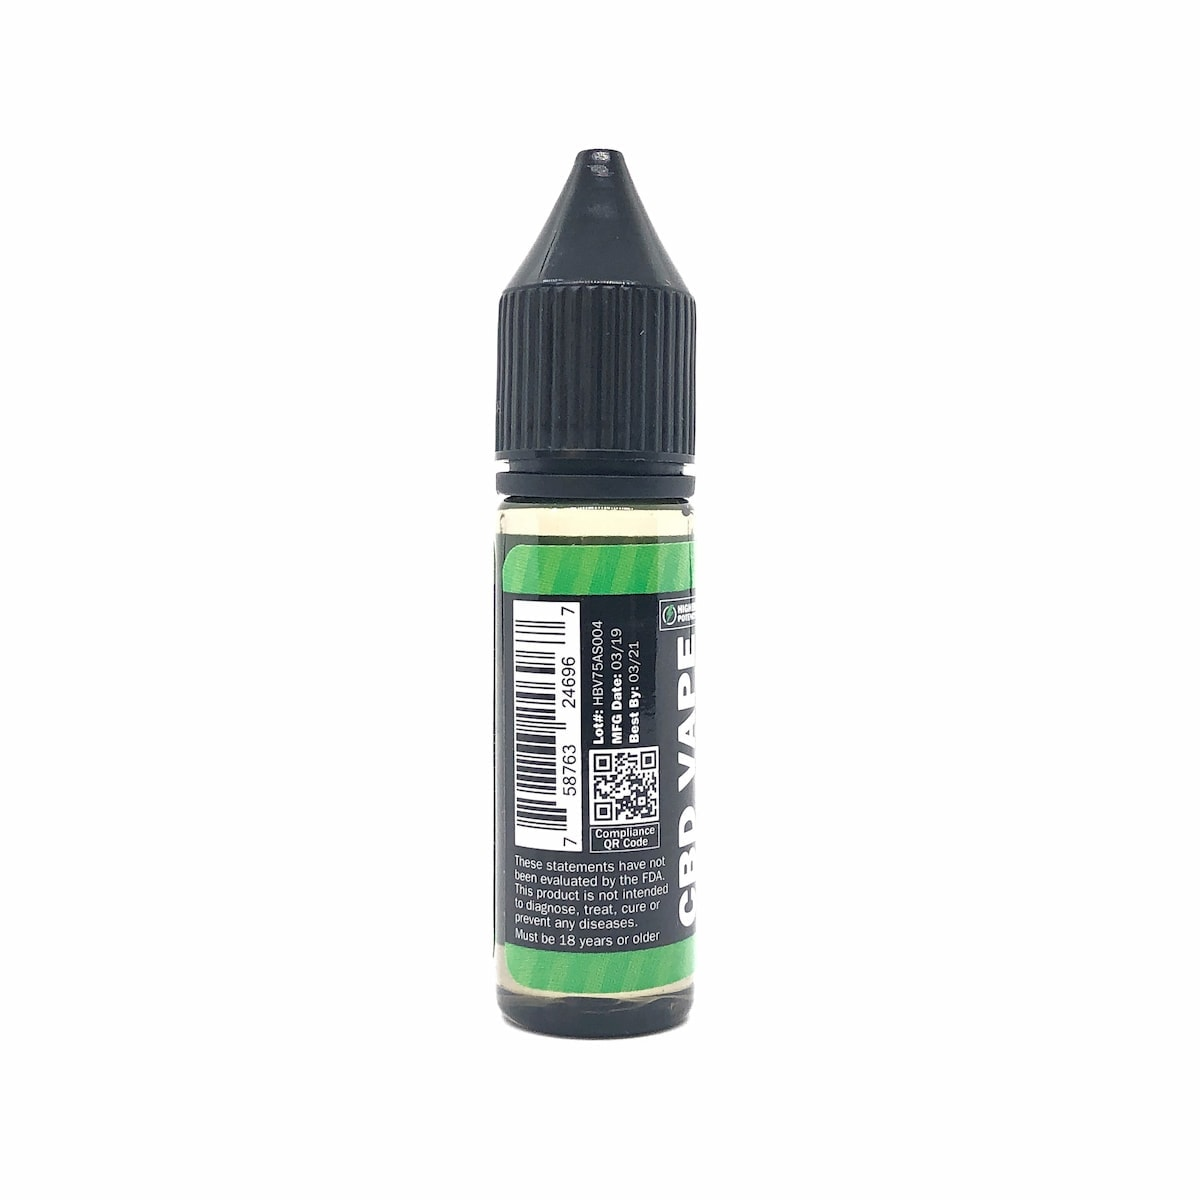 Hemp Bombs, CBD E-Liquid, Arctic Spearmint Blast, 16.5ml, 75mg of CBD-back